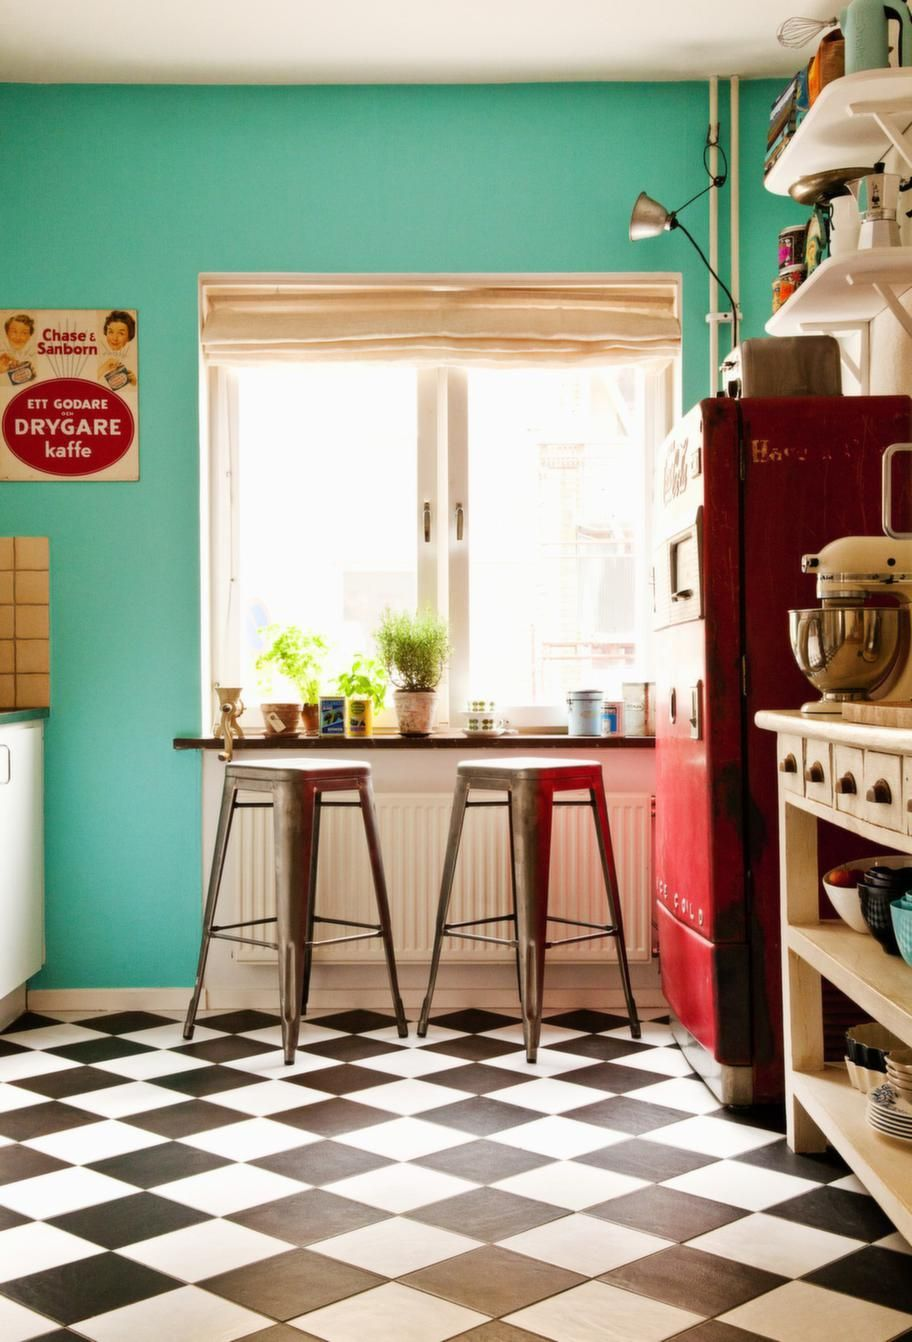 Teal and red kitchen black and white checkered floor - Black red and white kitchen designs ...